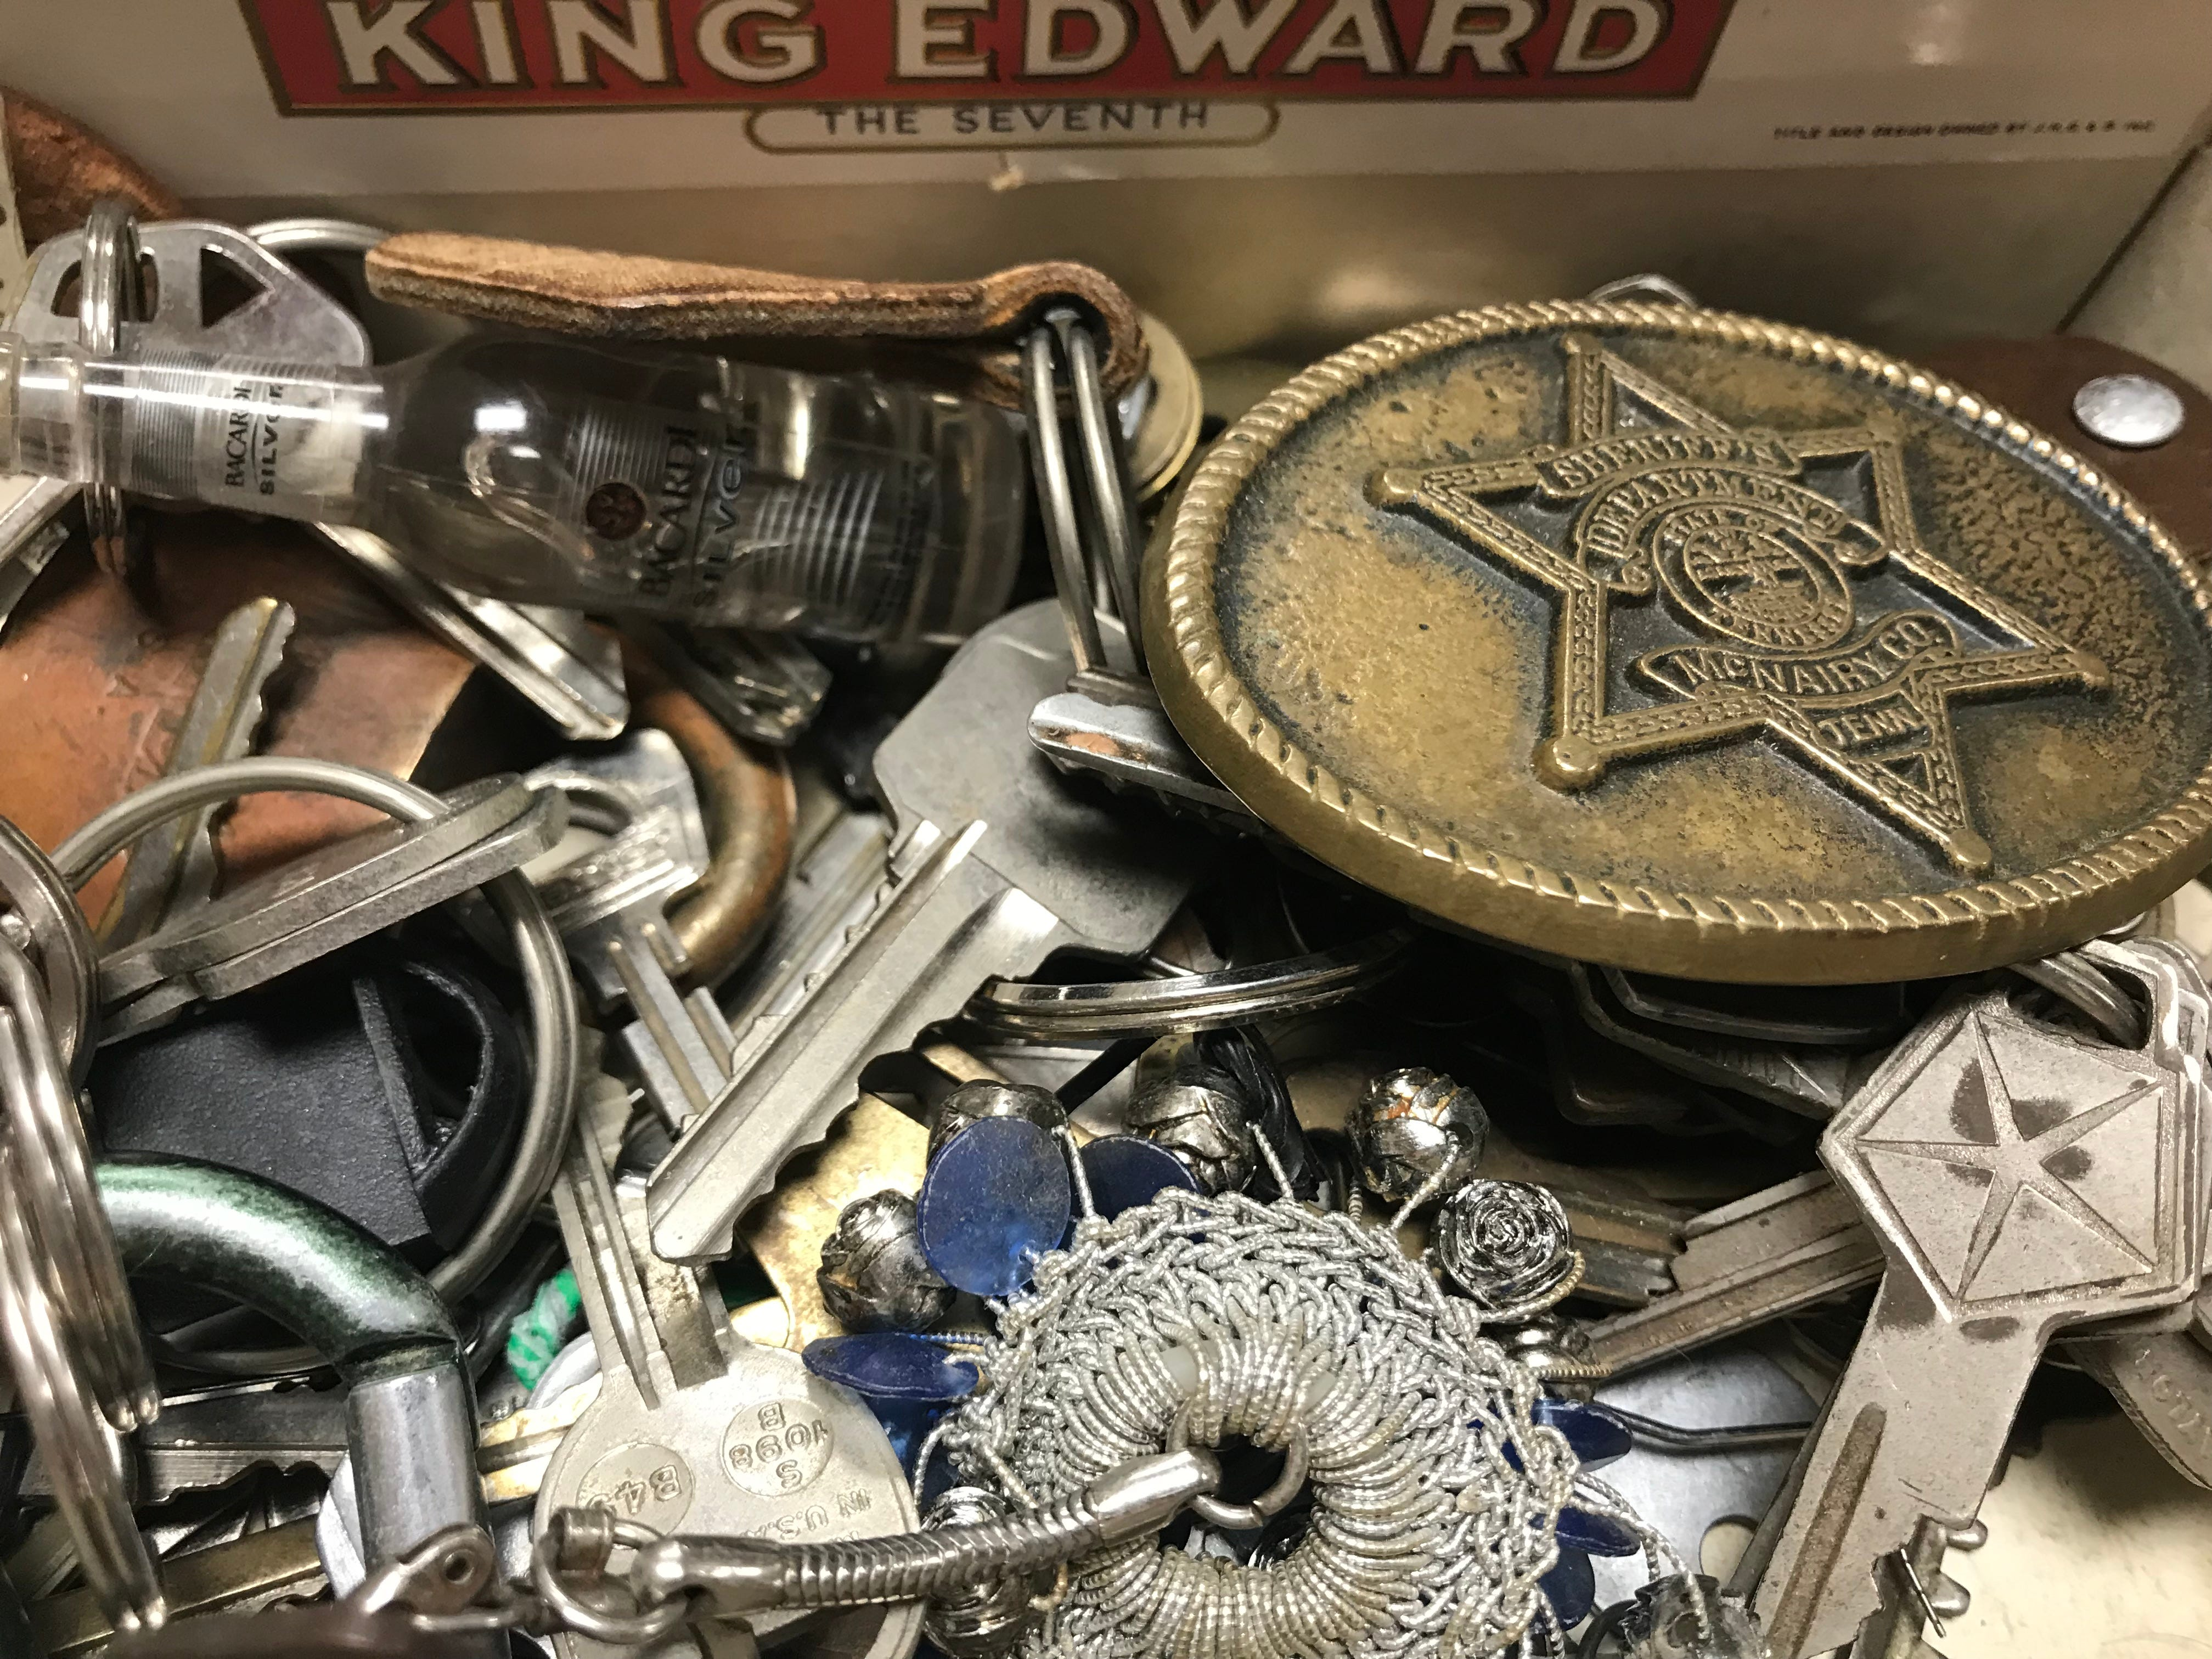 A McNairy County Sheriff's Department badge sits in a box of keys and trinkets  Madison County Sheriff's Office recovered from a theft ring believed to be targeting grieving families and others throughout West Tennessee.